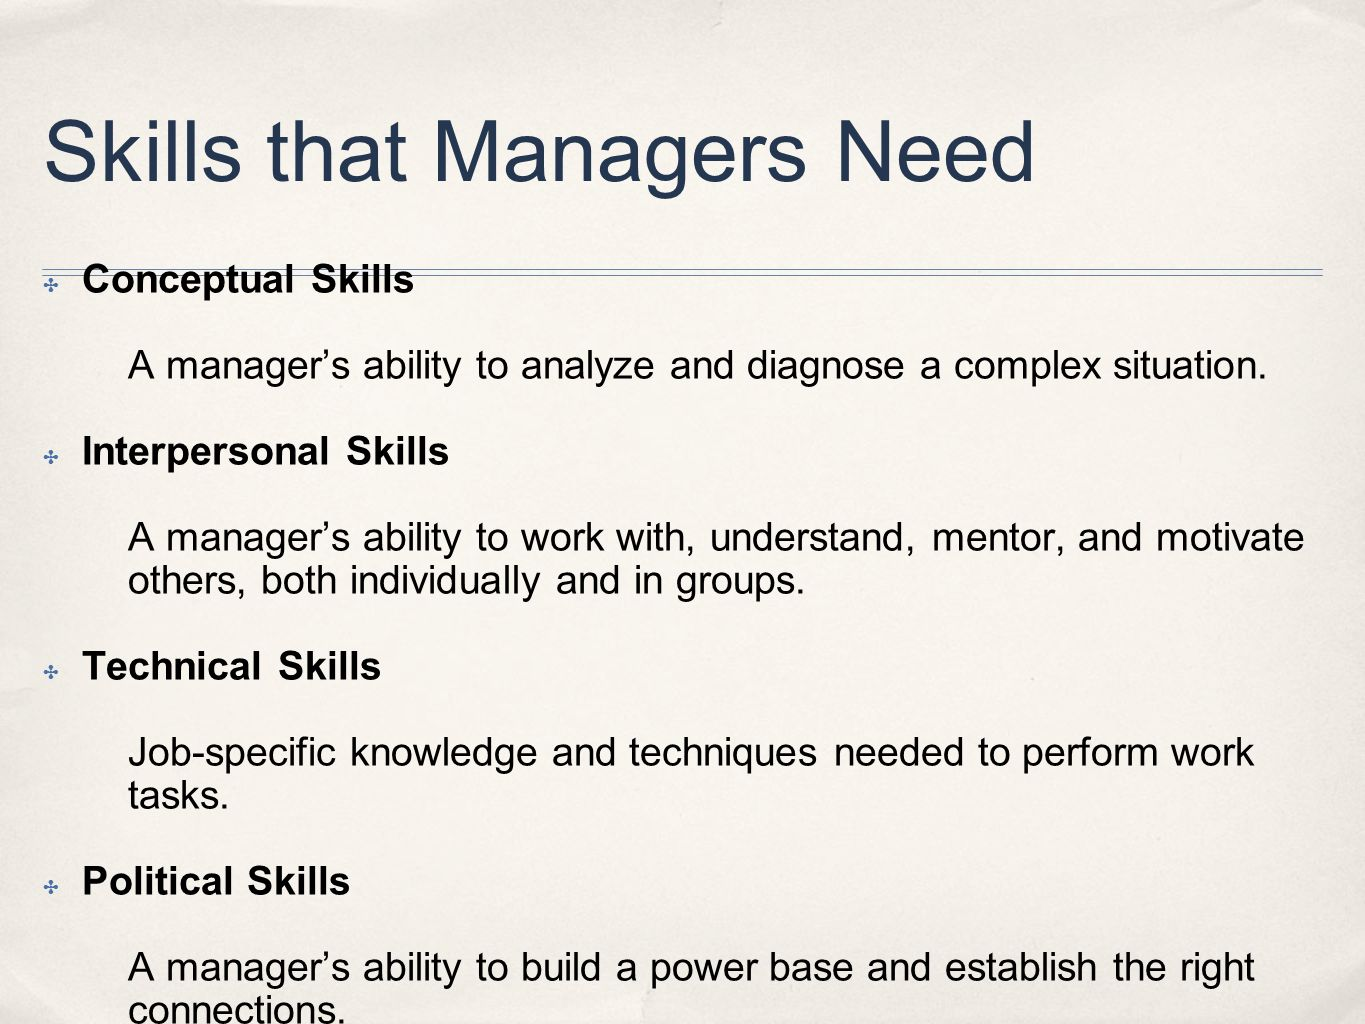 Skills that Managers Need